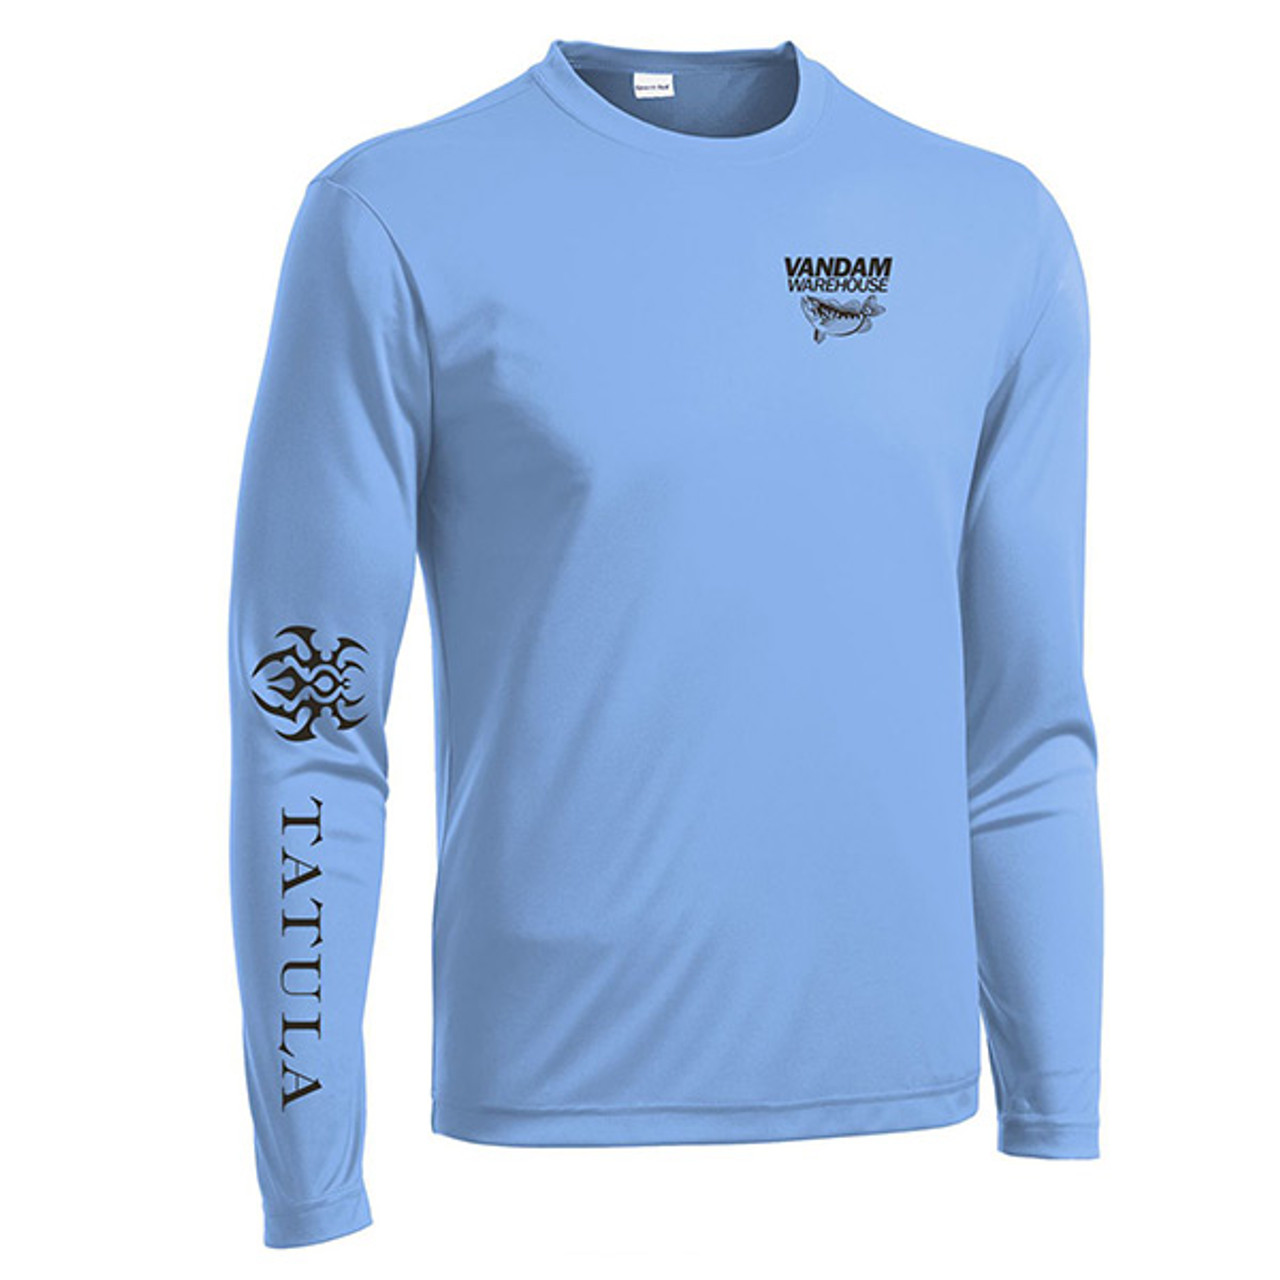 VanDam Warehouse Daiwa Tatula Performance Shirt - Blue Front